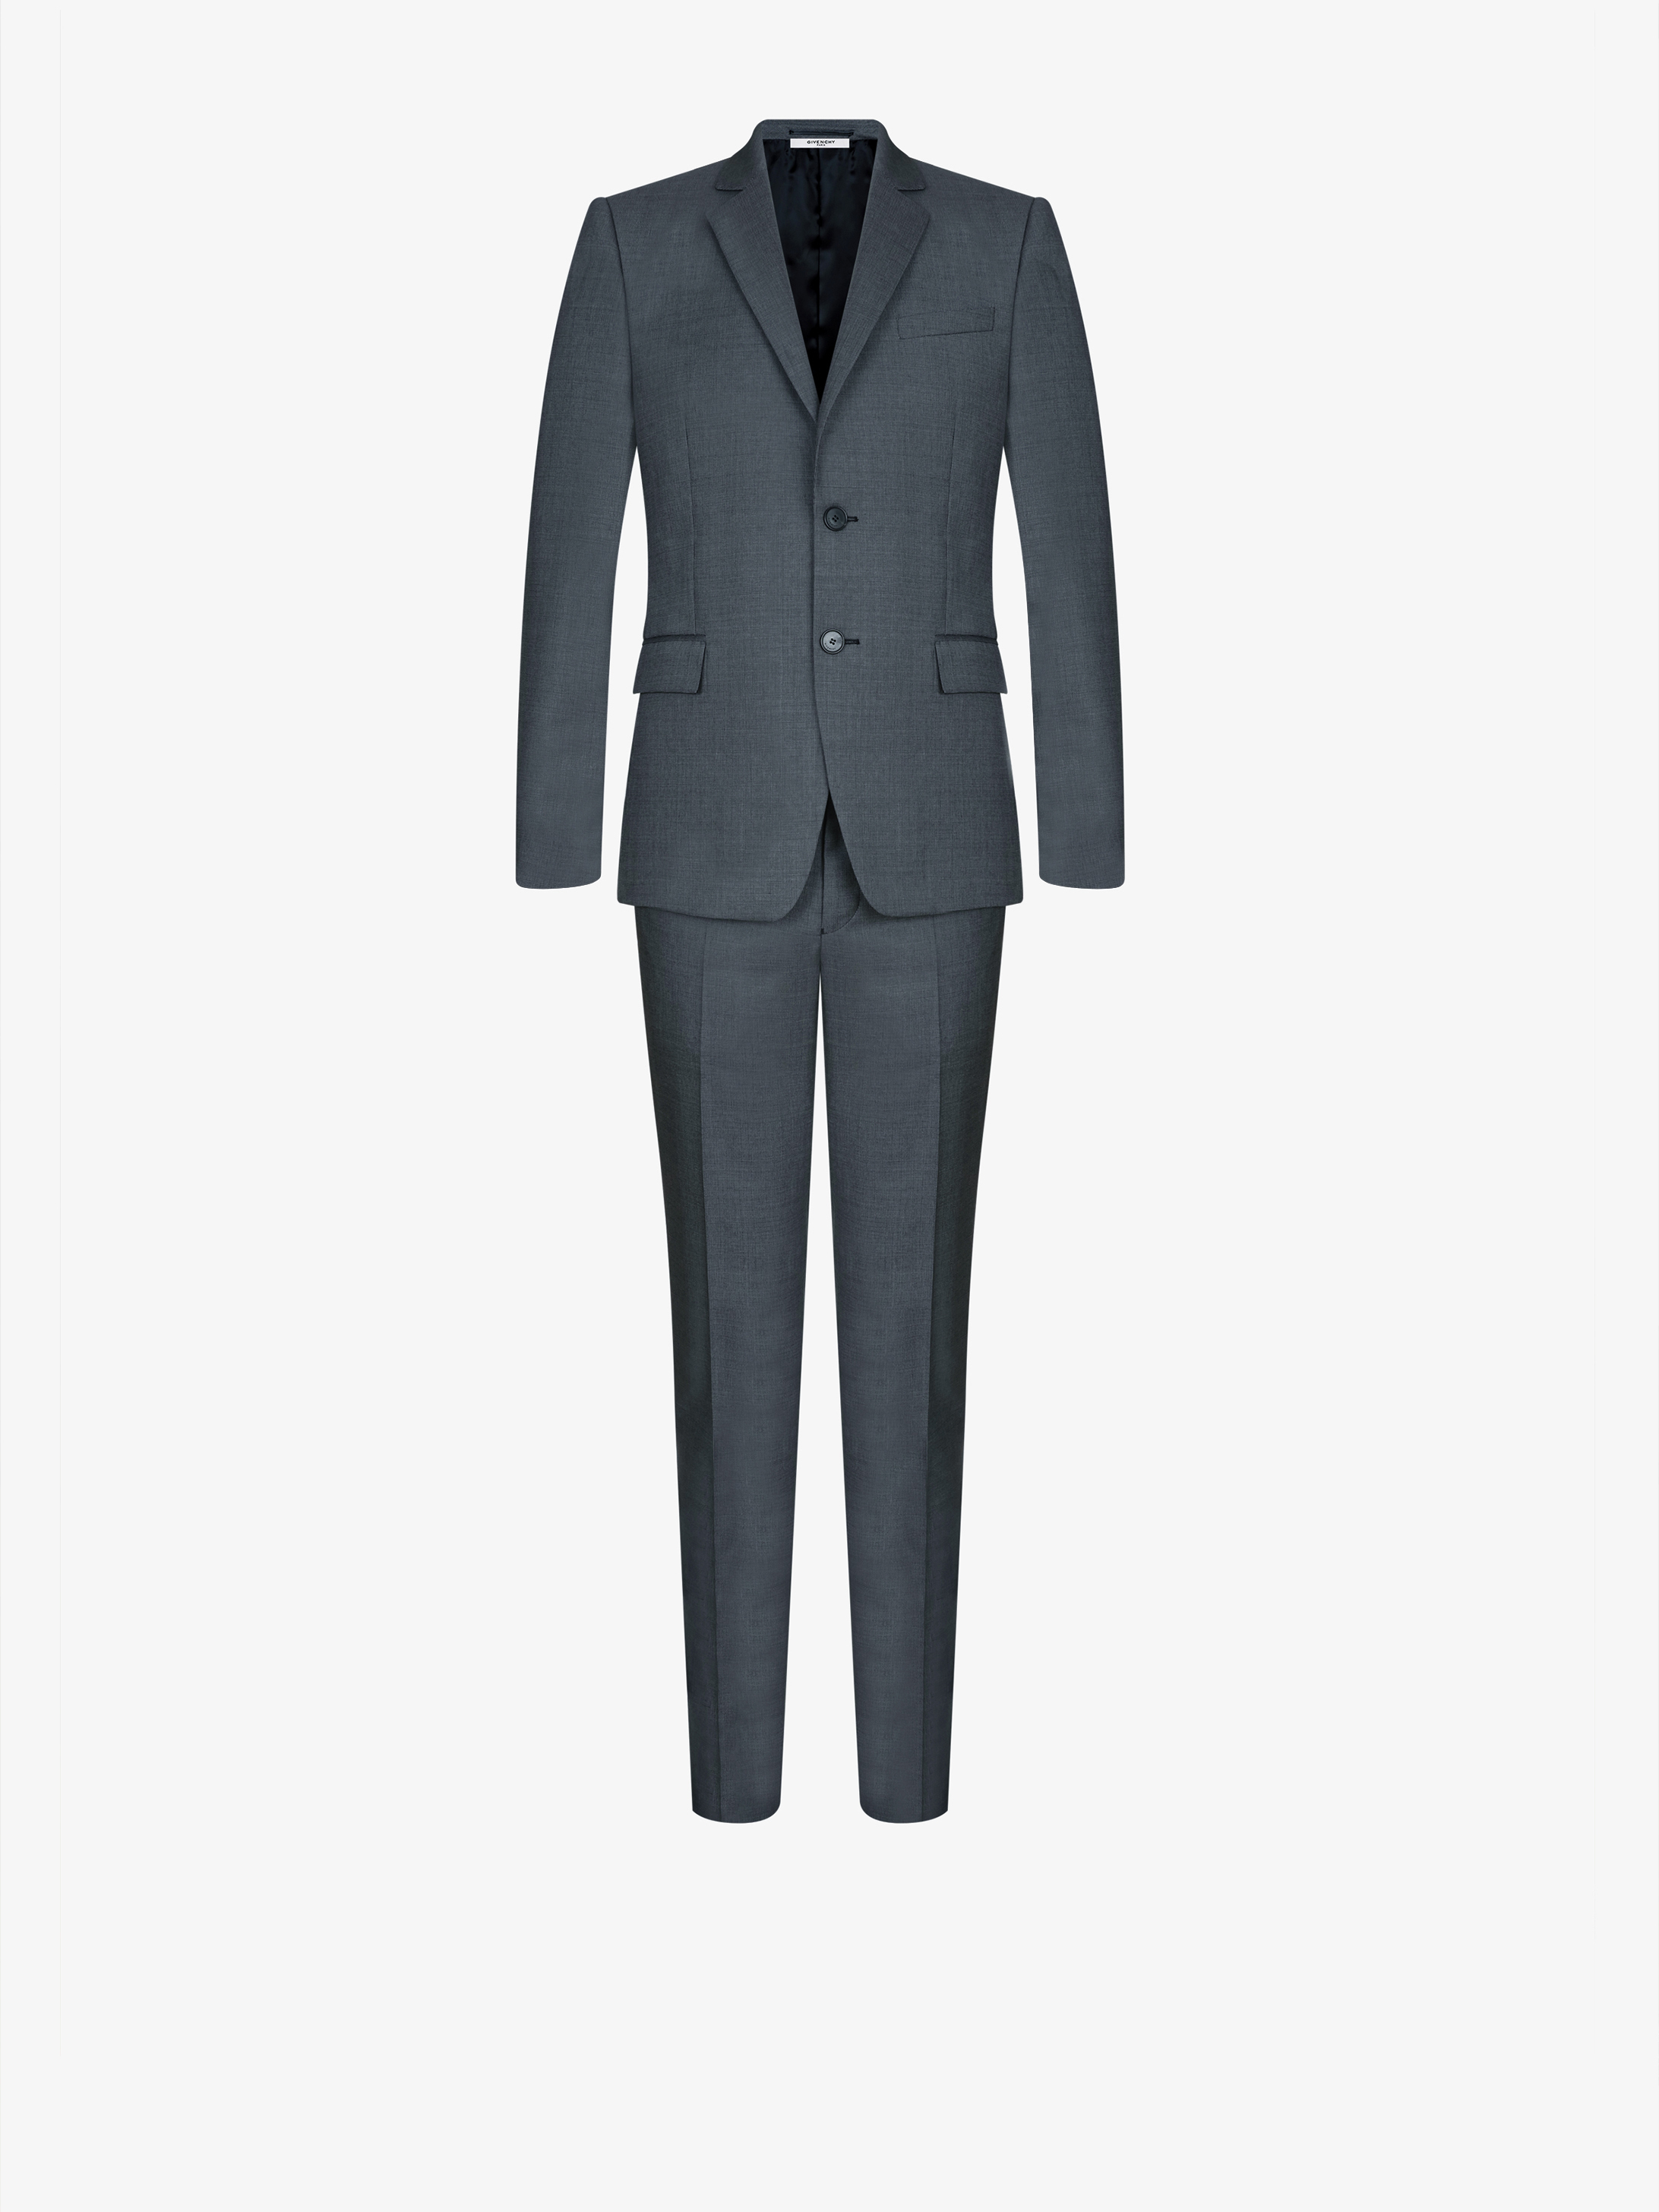 Regular fit microstructured wool suit